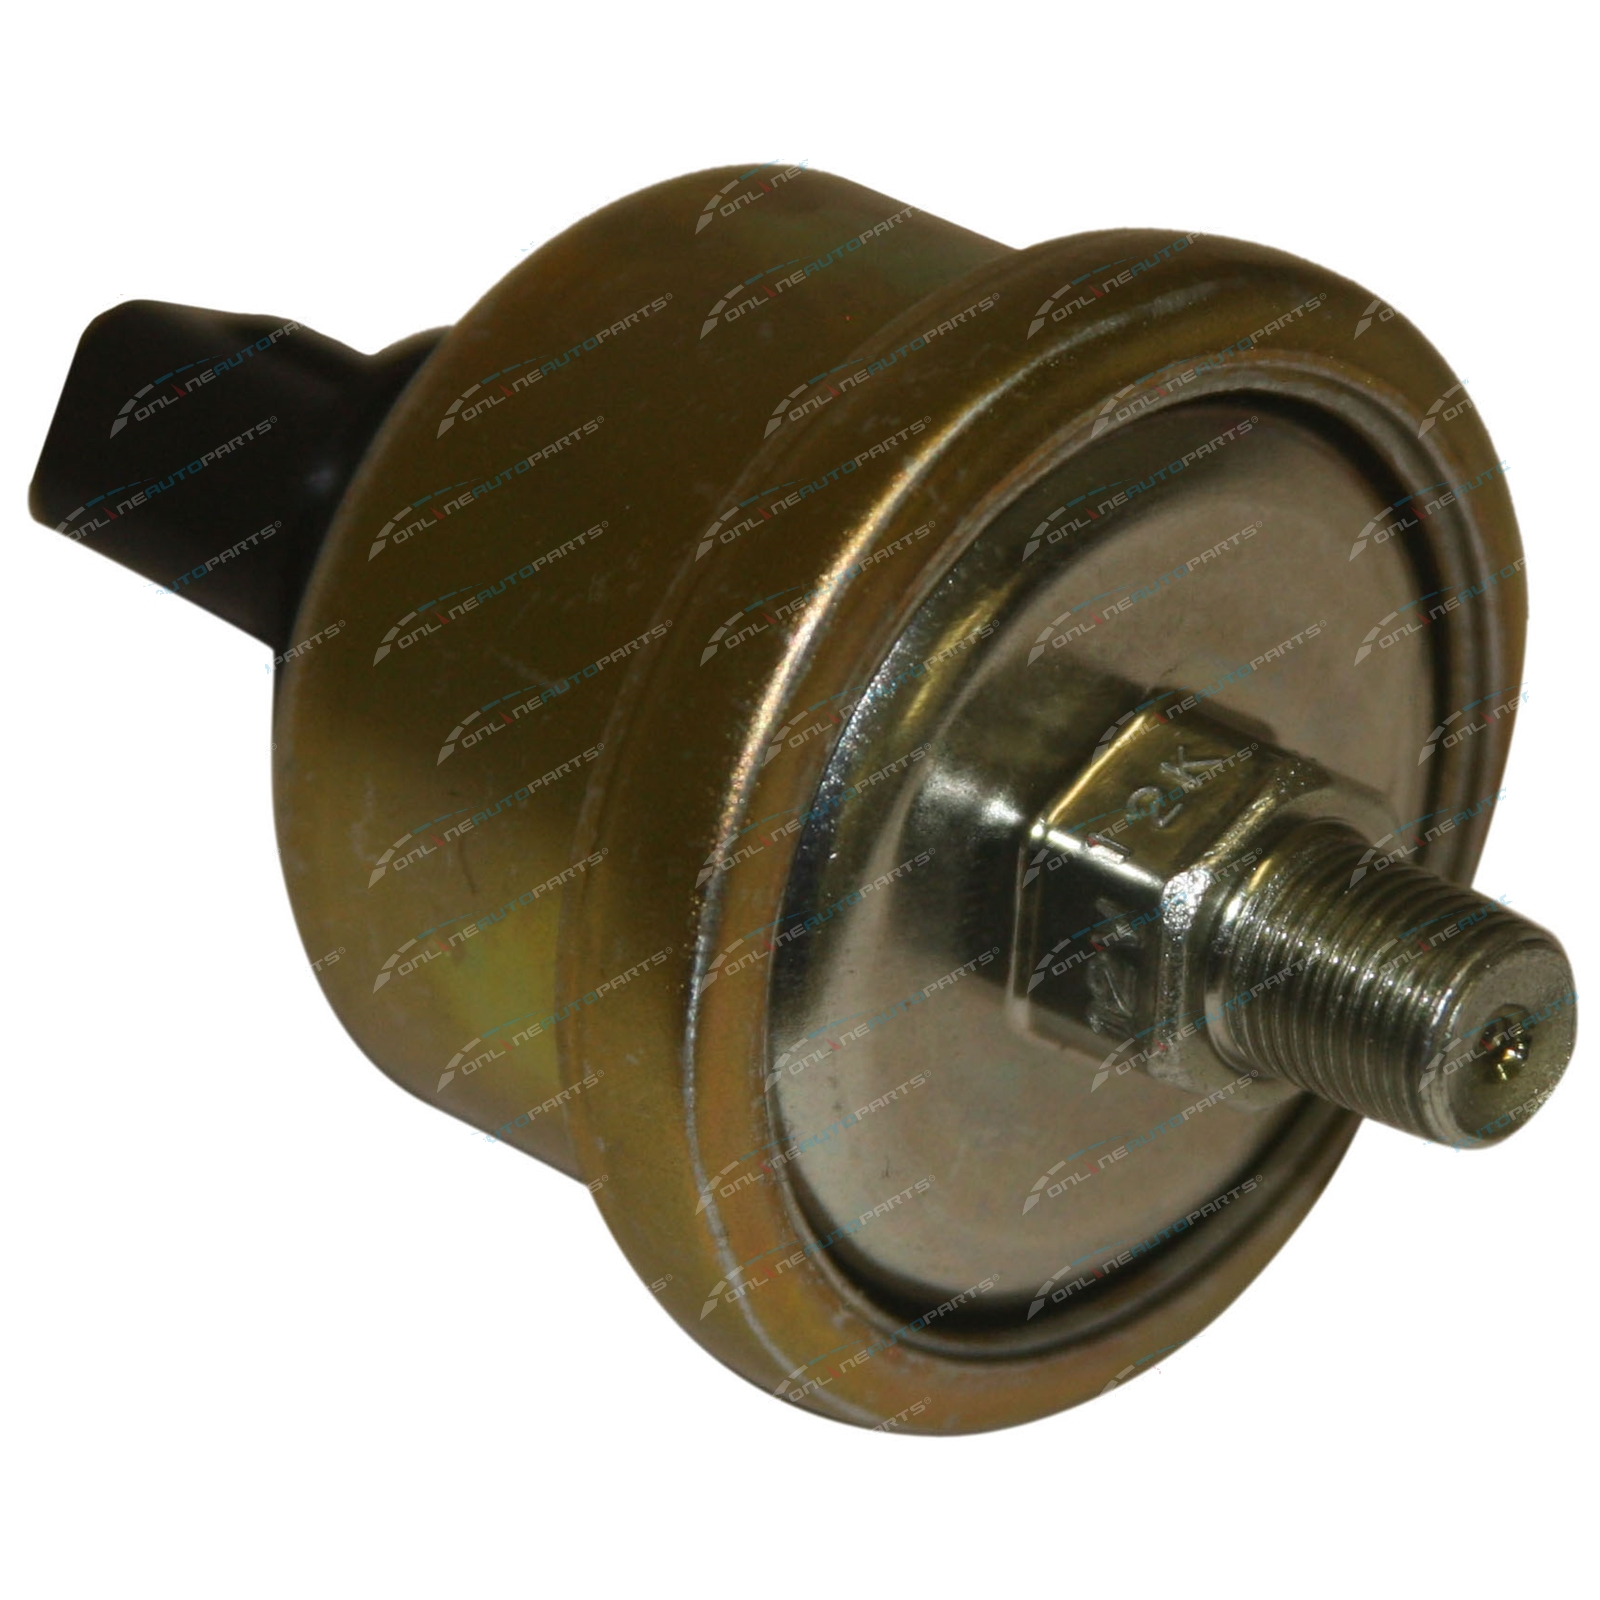 Oil Gauge Electrical Pressure Sender suits 100 Series V8